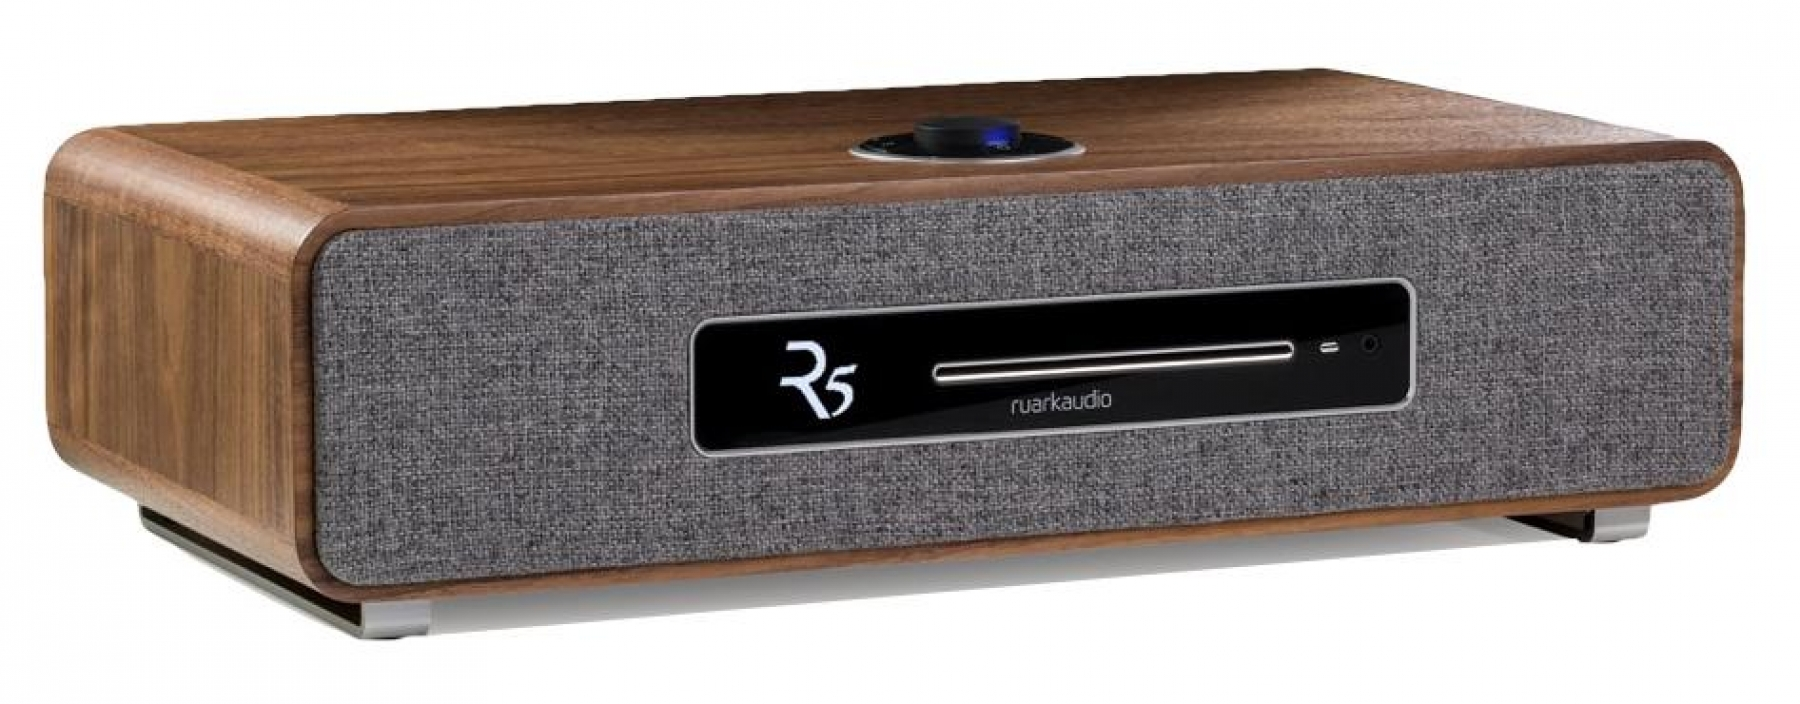 Ruark Audio R5 – THE ALL-IN-ONE MUSIC SYSTEM FOR THE HOME